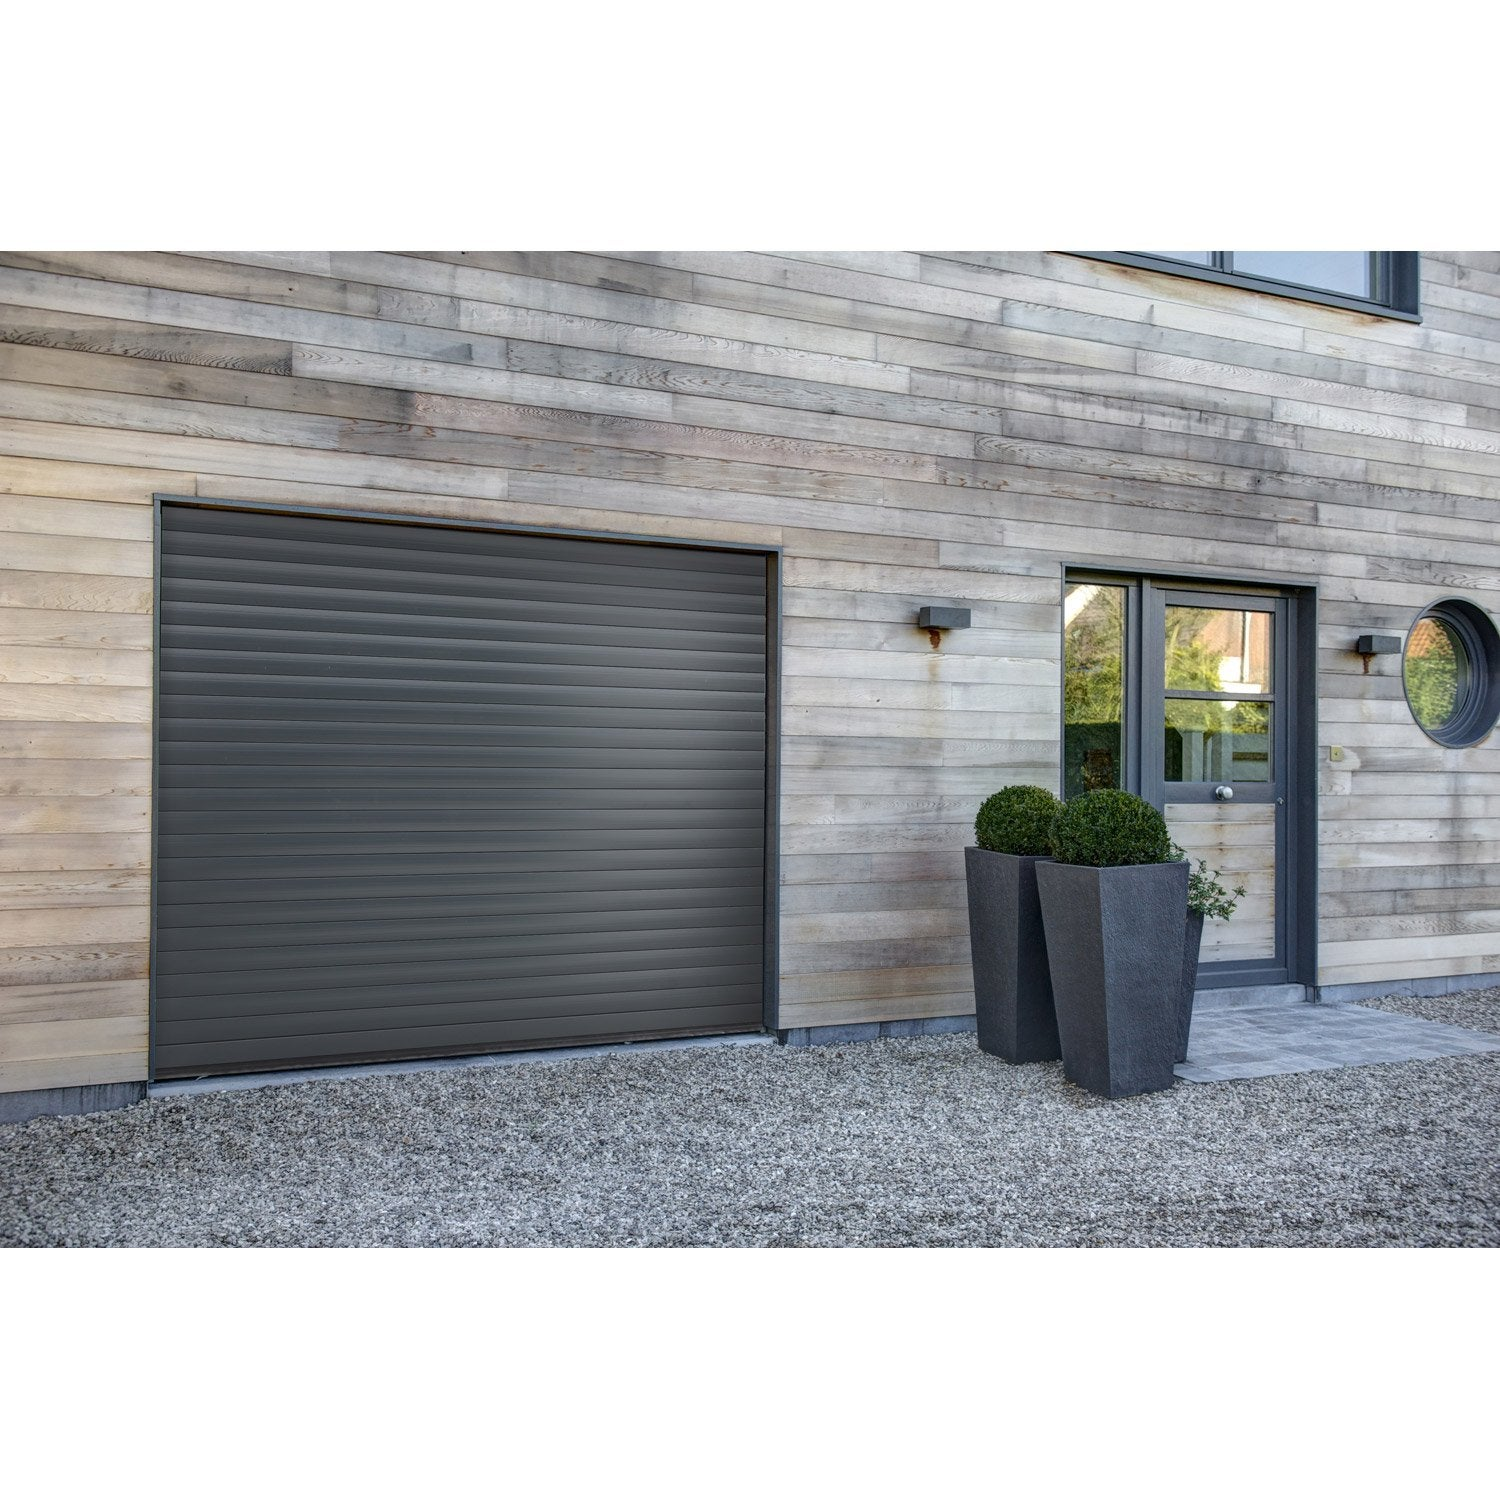 porte de garage enroulement excellence motoris e aluminium gris 200x240cm leroy merlin. Black Bedroom Furniture Sets. Home Design Ideas